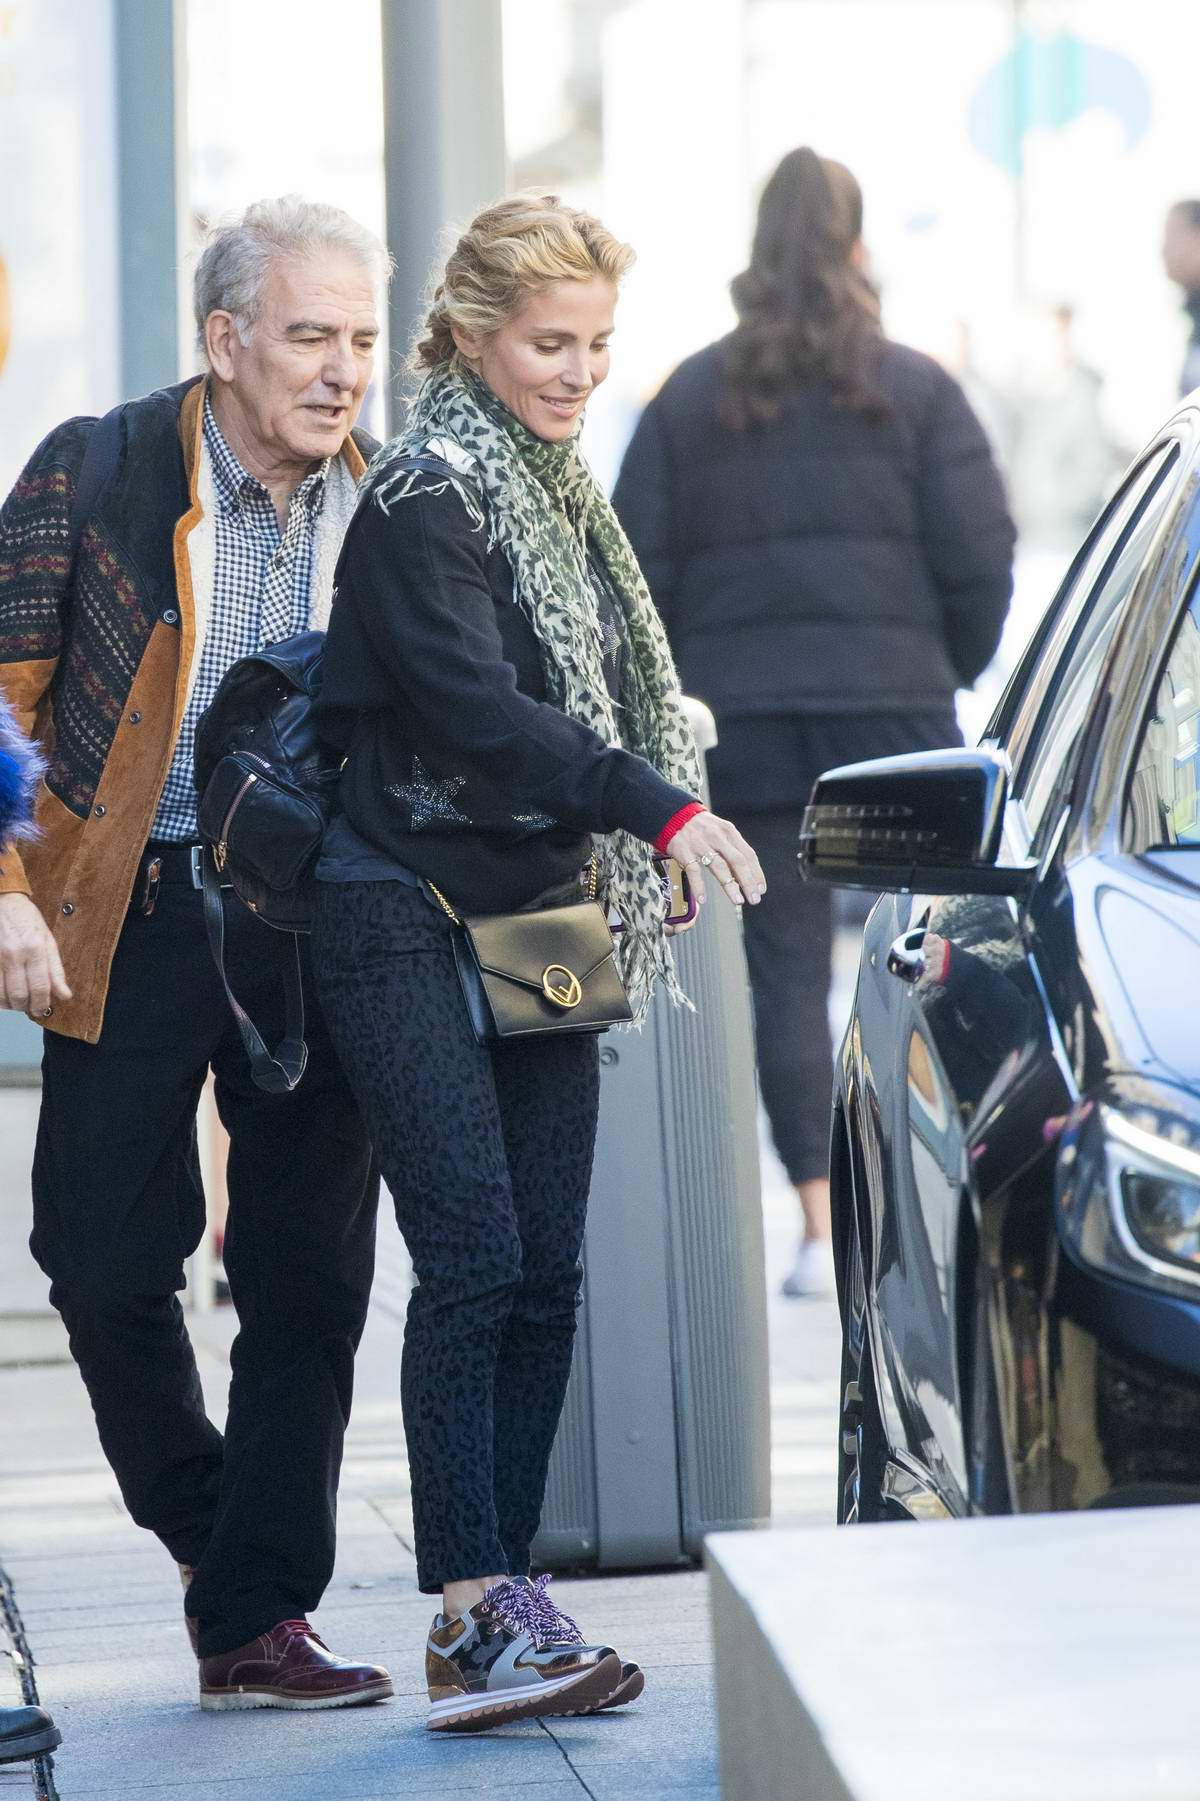 Elsa Pataky dresses in leopard print pants as she shops for wigs at Burlesque Wig shop in Madrid, Spain